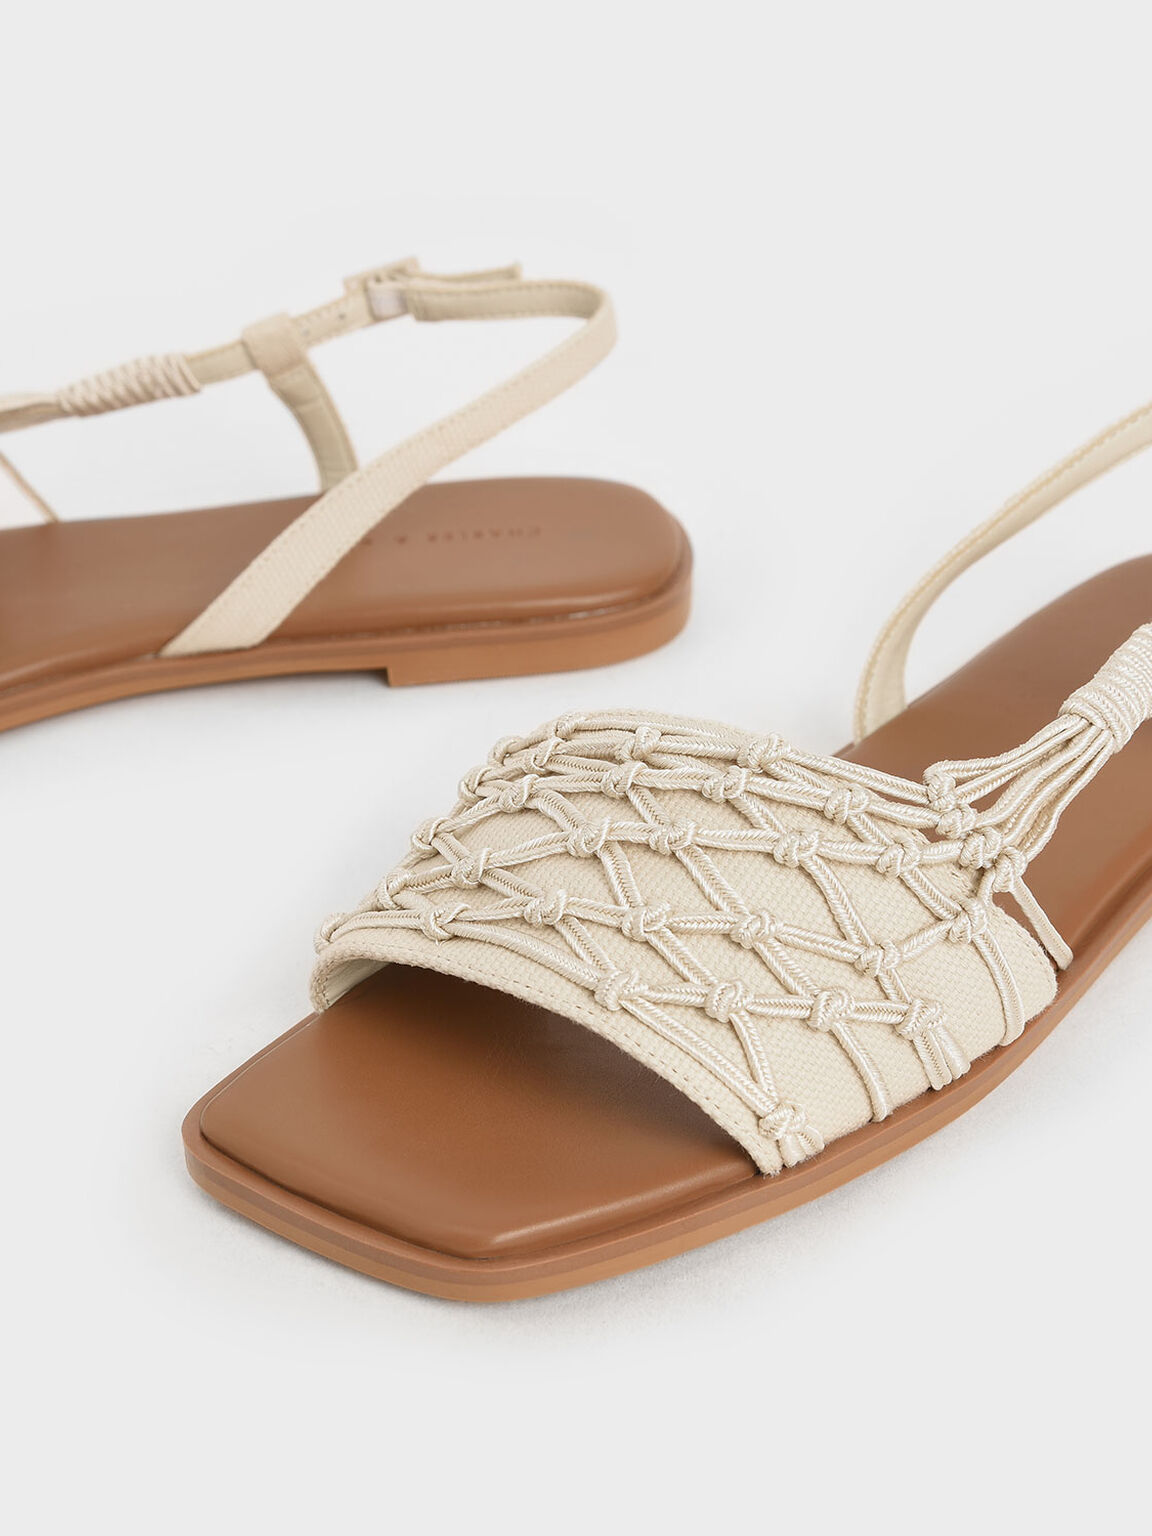 Knotted Rope Slingback Sandals, Cream, hi-res